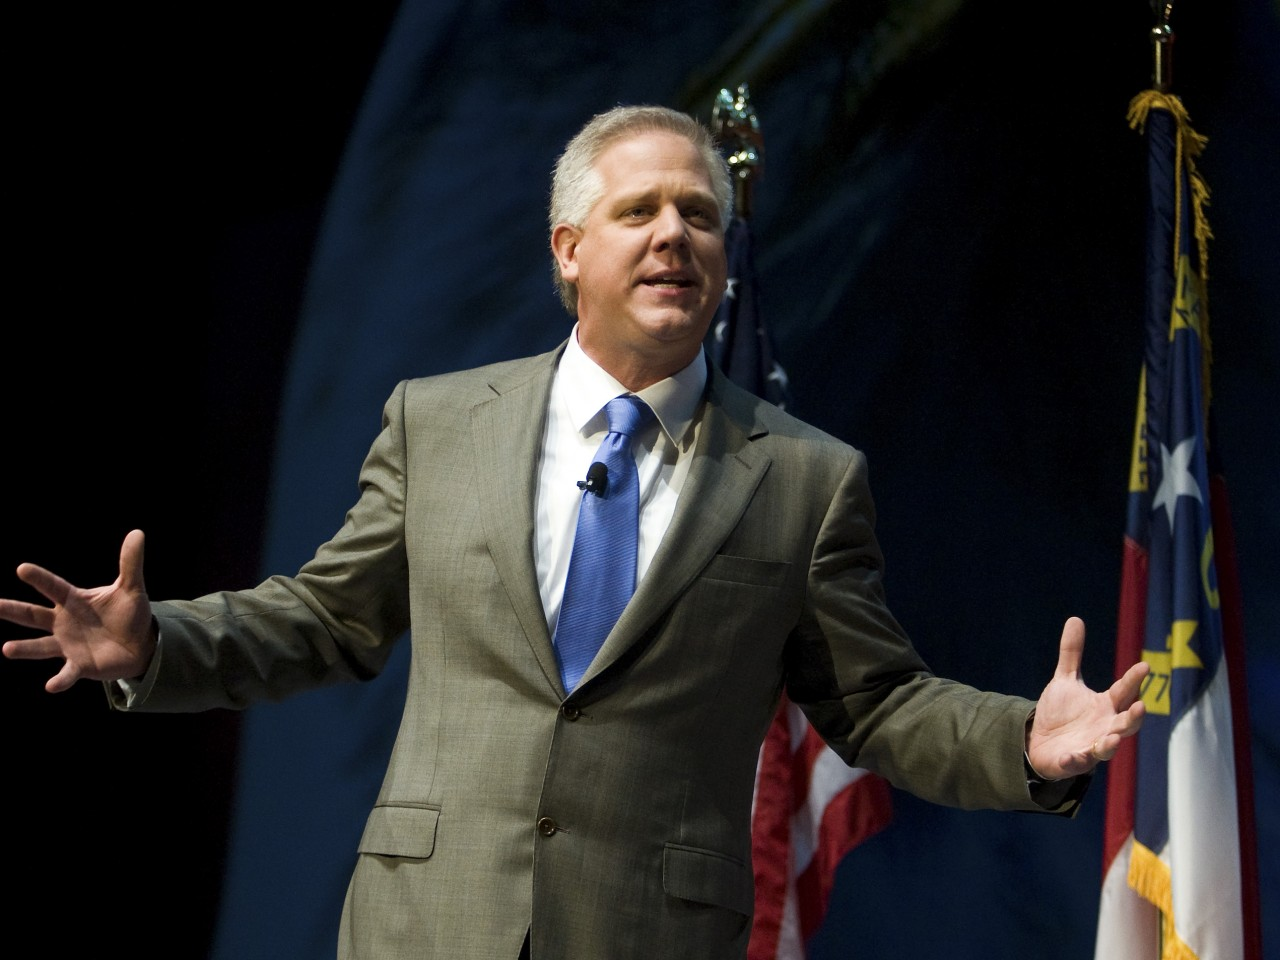 EnlargeFox News host Glenn Beck speaks during the National Rifle Association's 139th annual meeting in Charlotte, North Carolina on May 15, 2010.